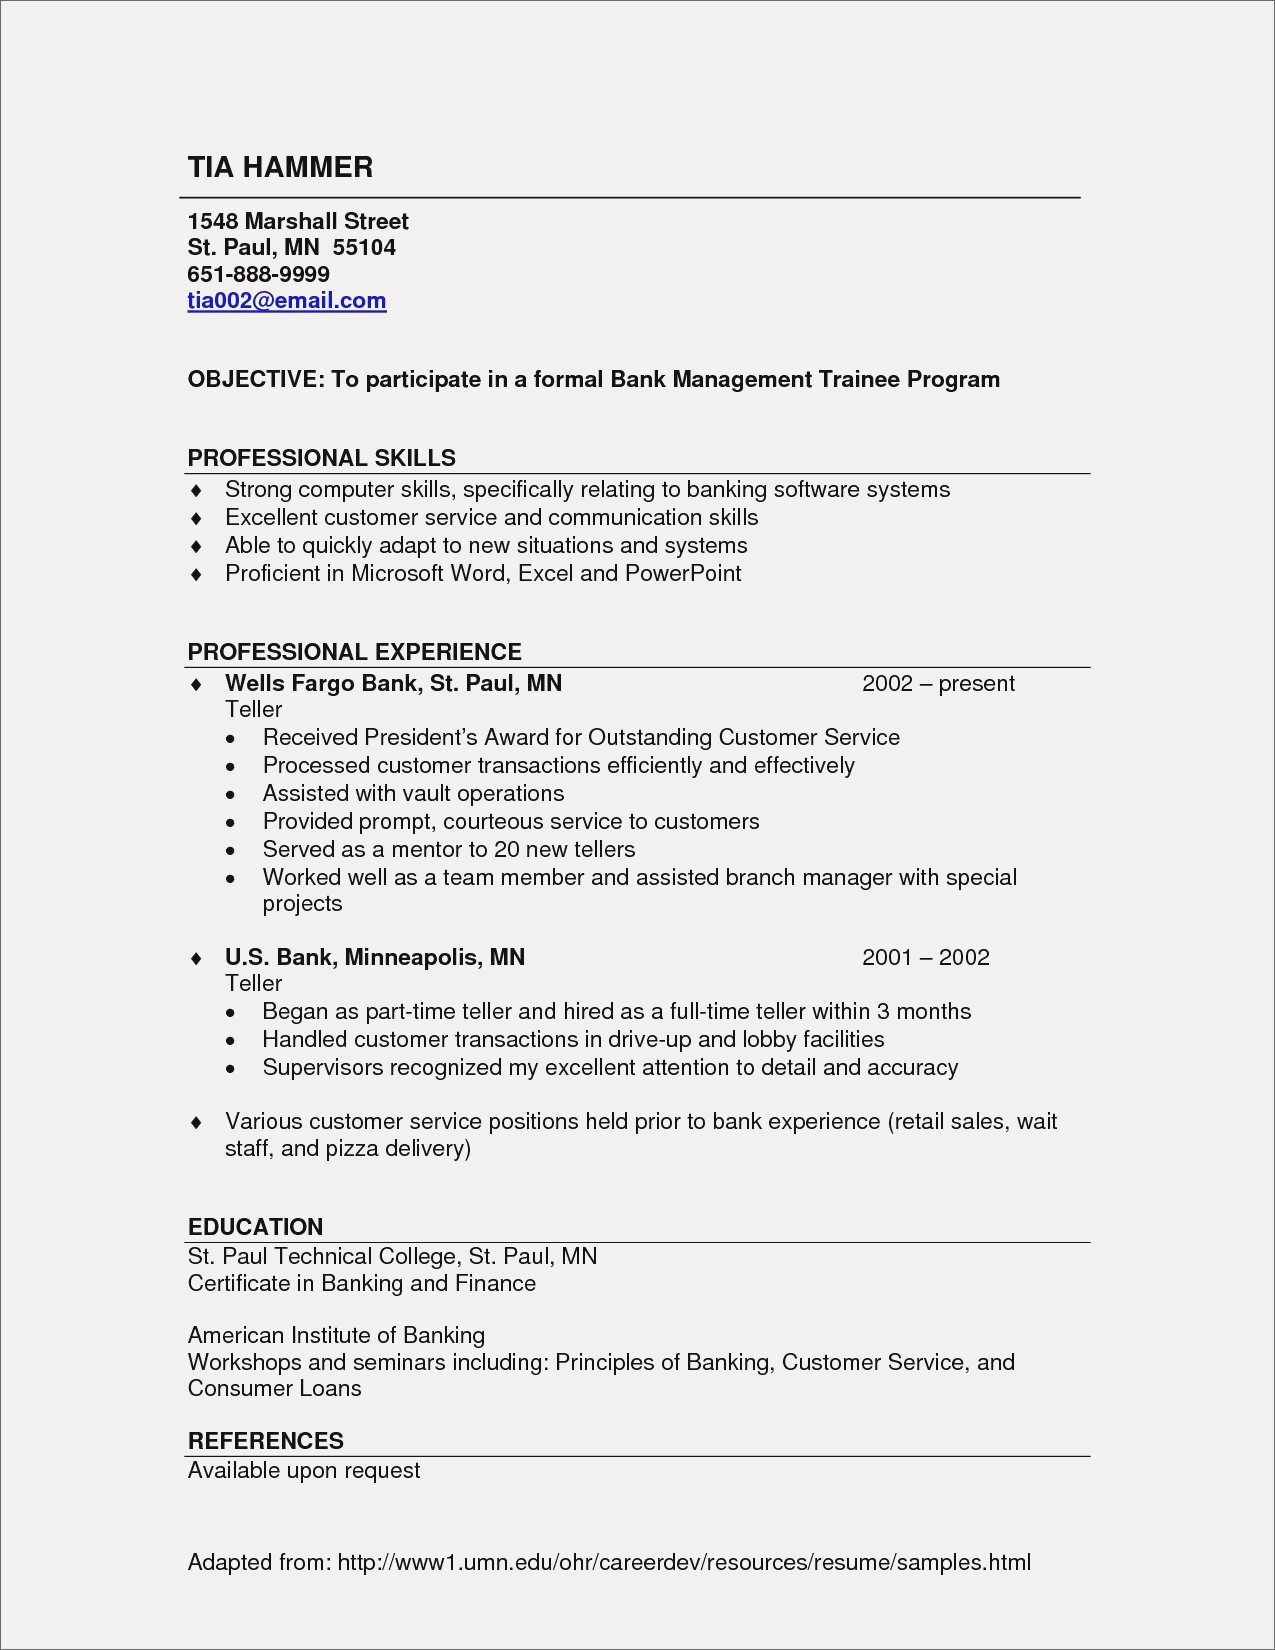 marshall resume template example-Resume Templates For Customer Service Best Customer Service Resume Sample Beautiful Resume Examples 0d Skills 17-s